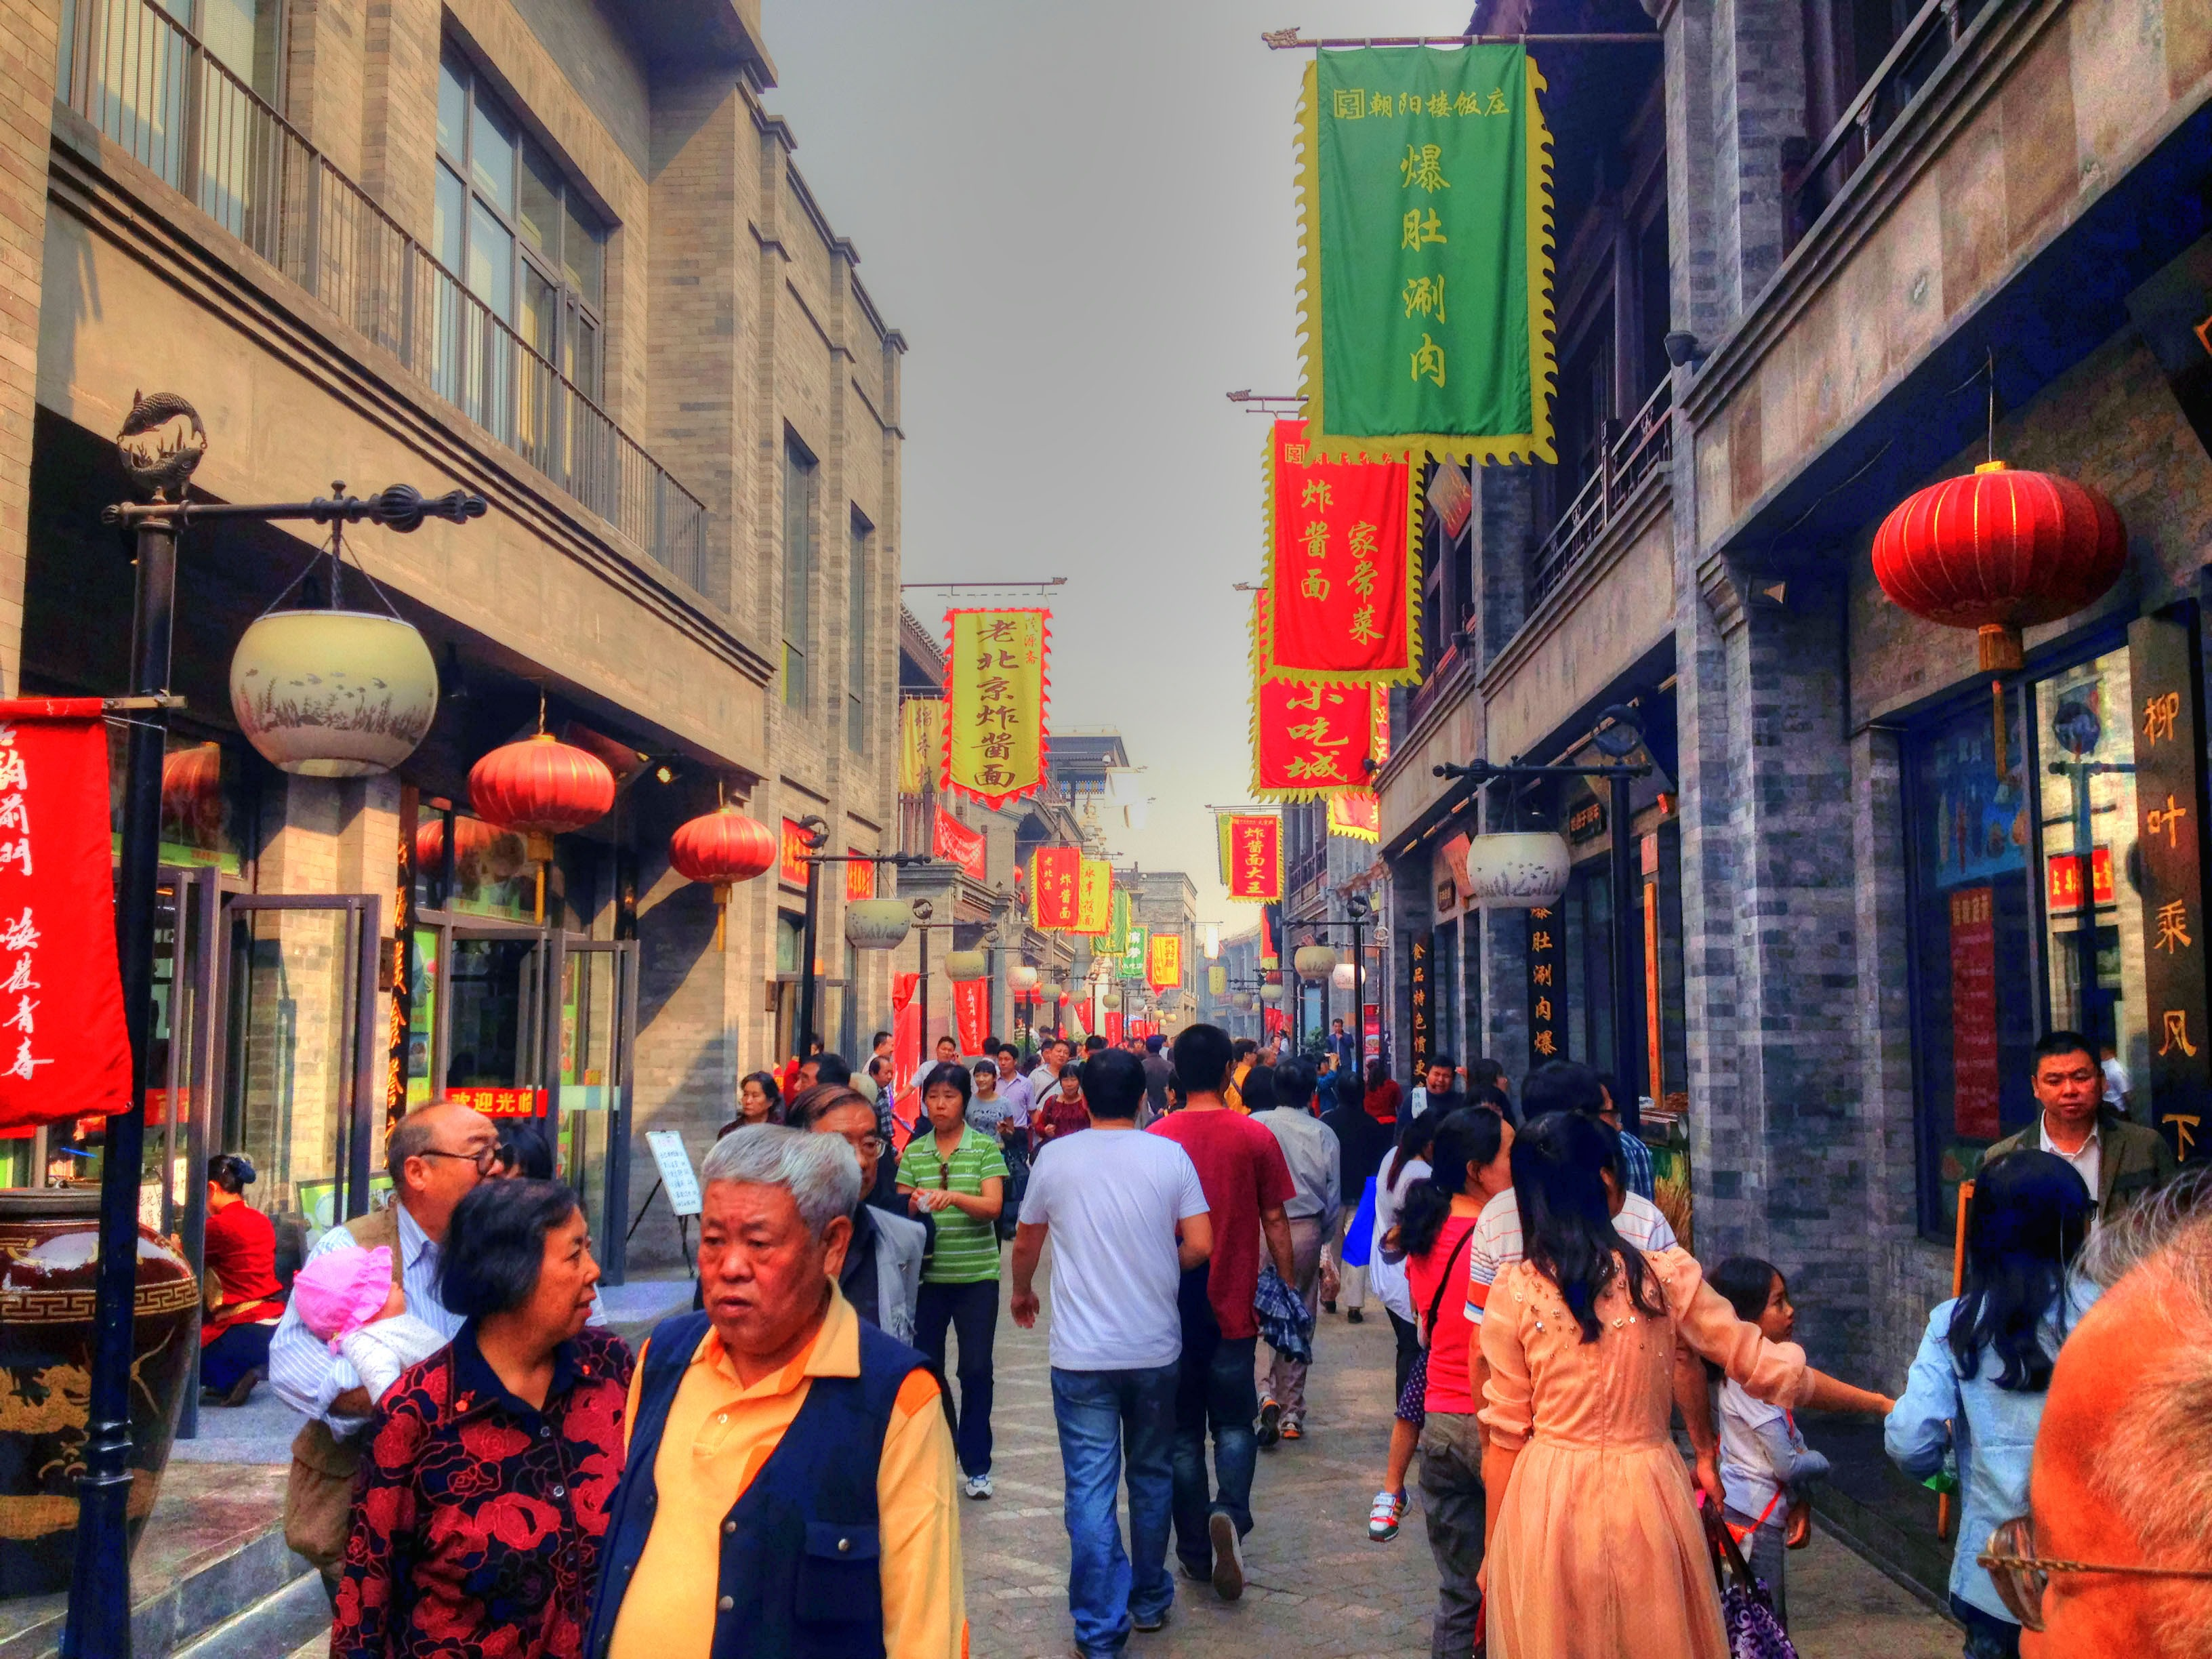 Tourists Share Their Most Interesting Cultural Observations Abroad